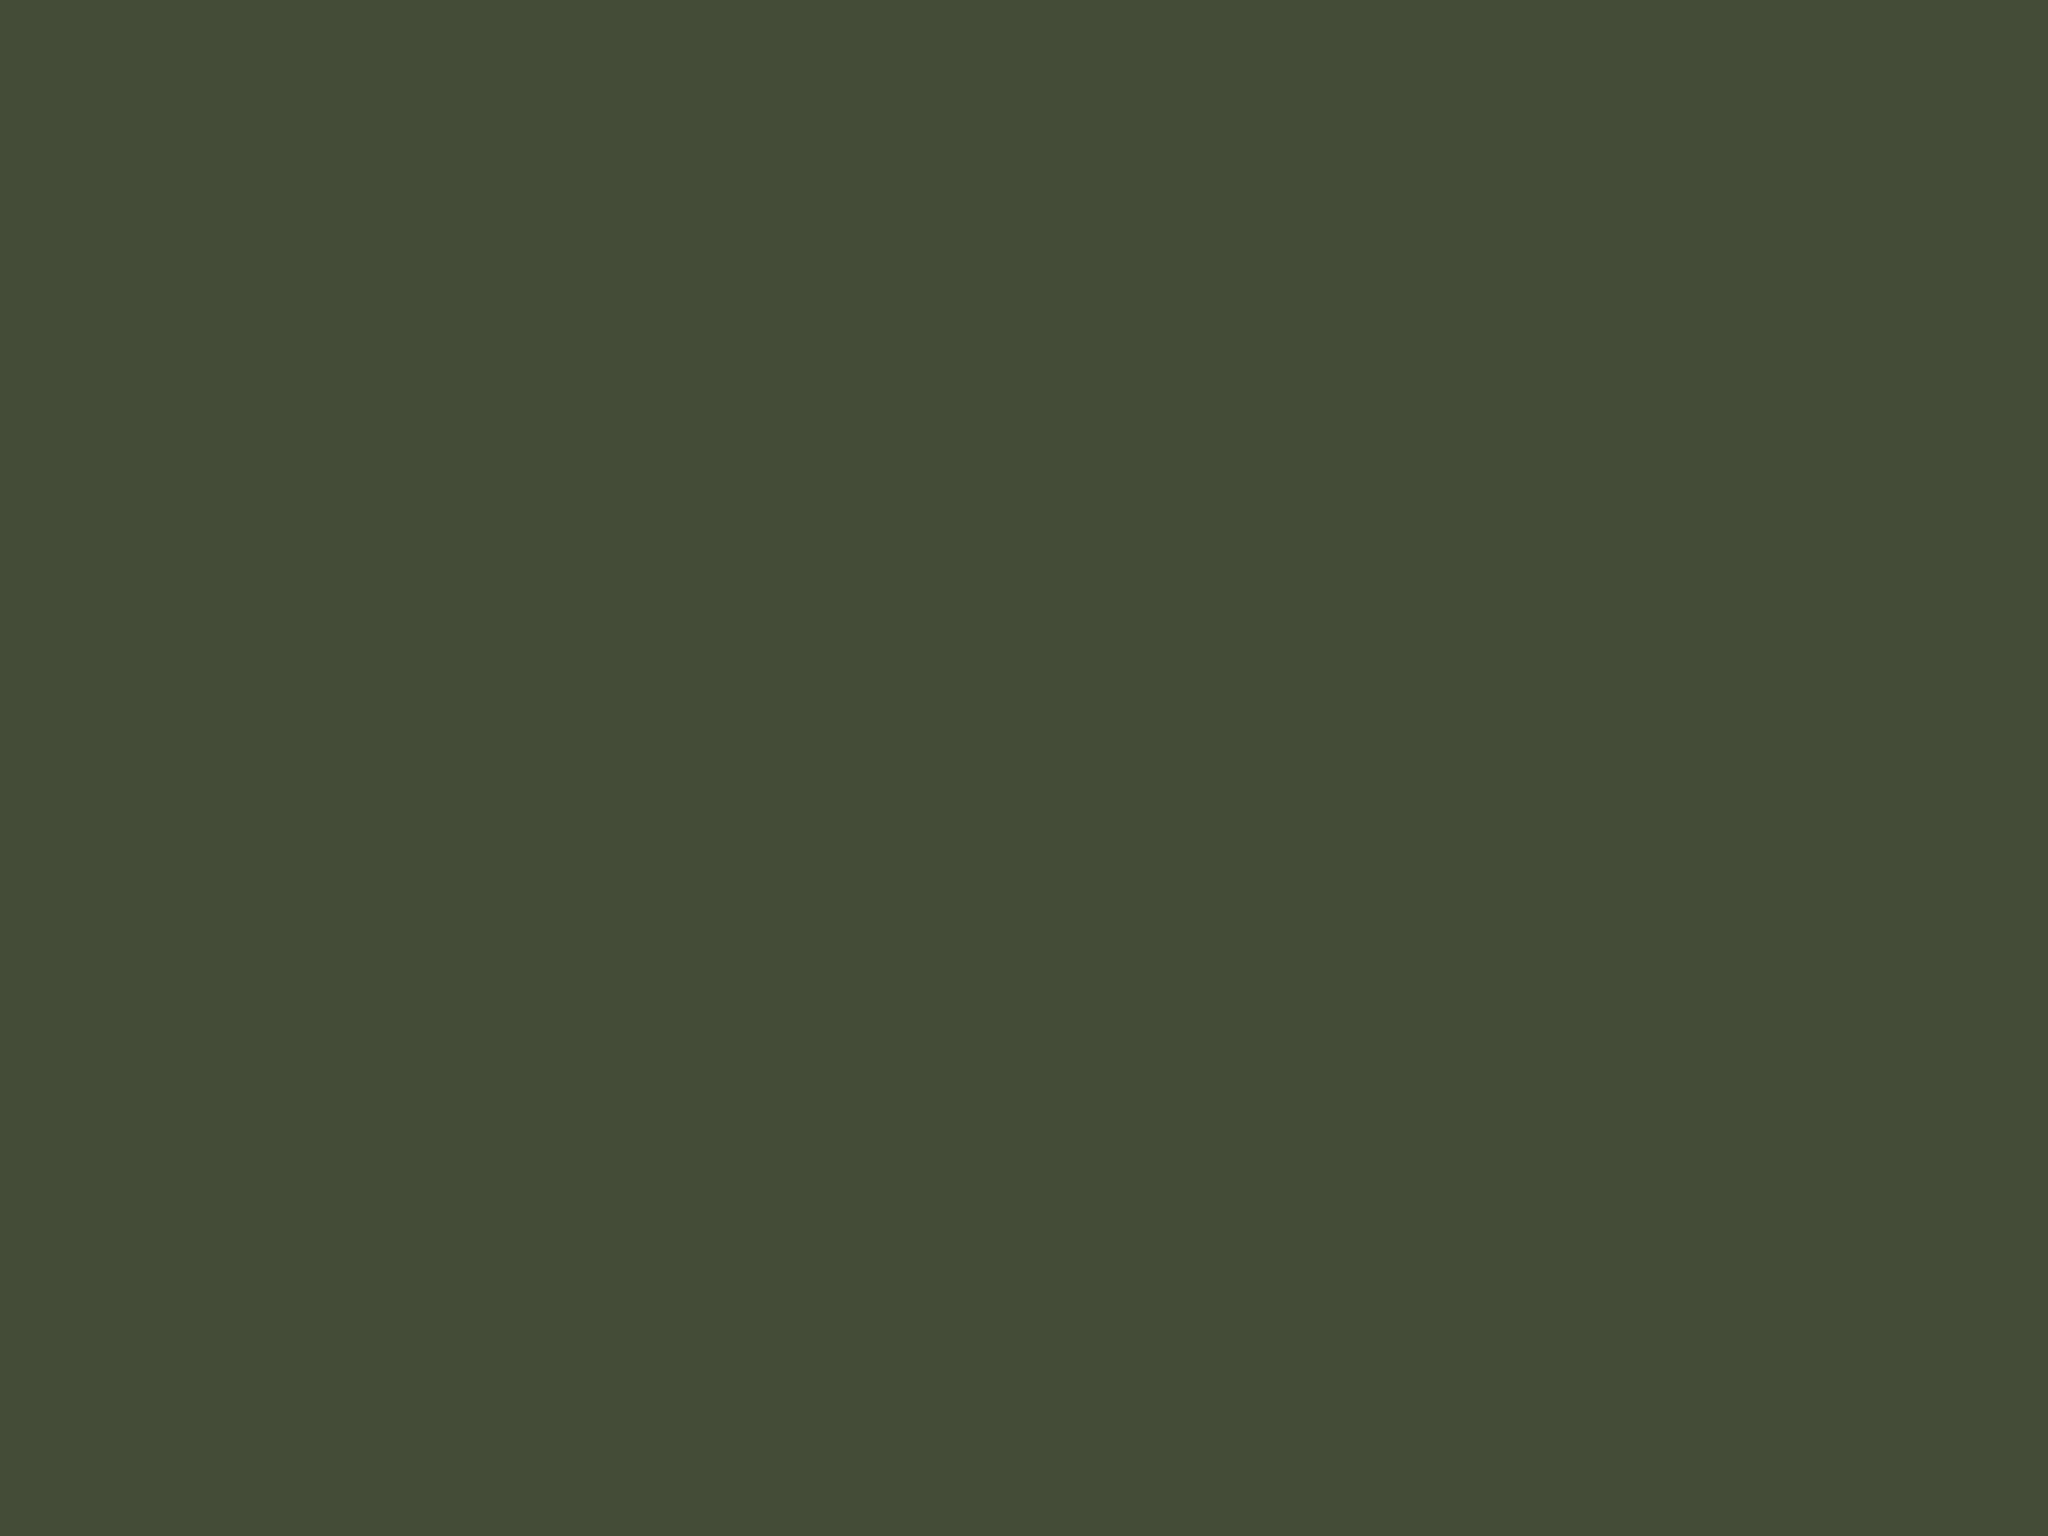 2048x1536 Rifle Green Solid Color Background